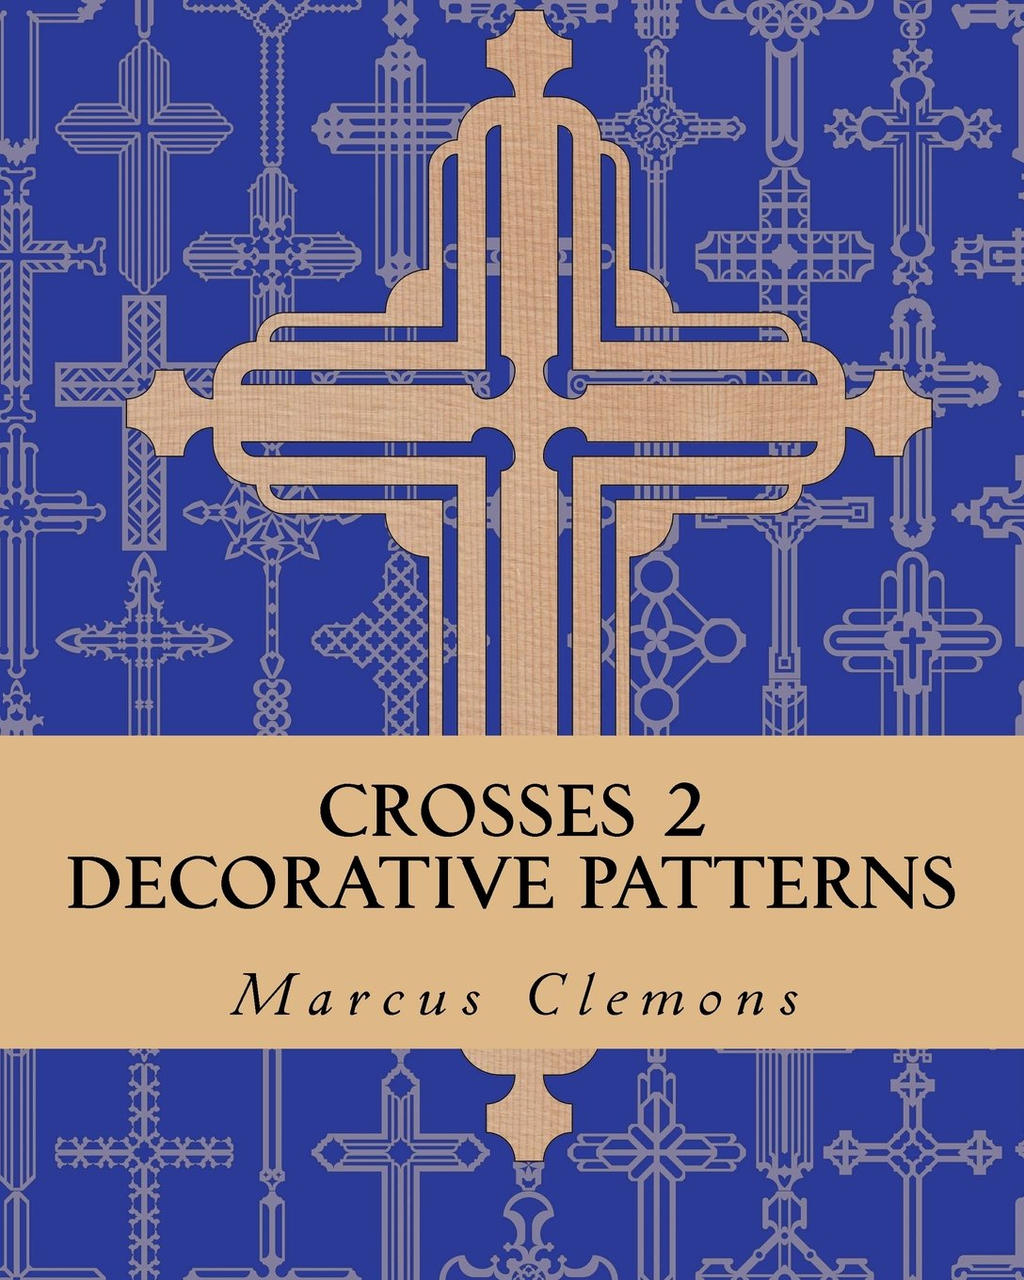 Decorative Crosses To Hang On Wall